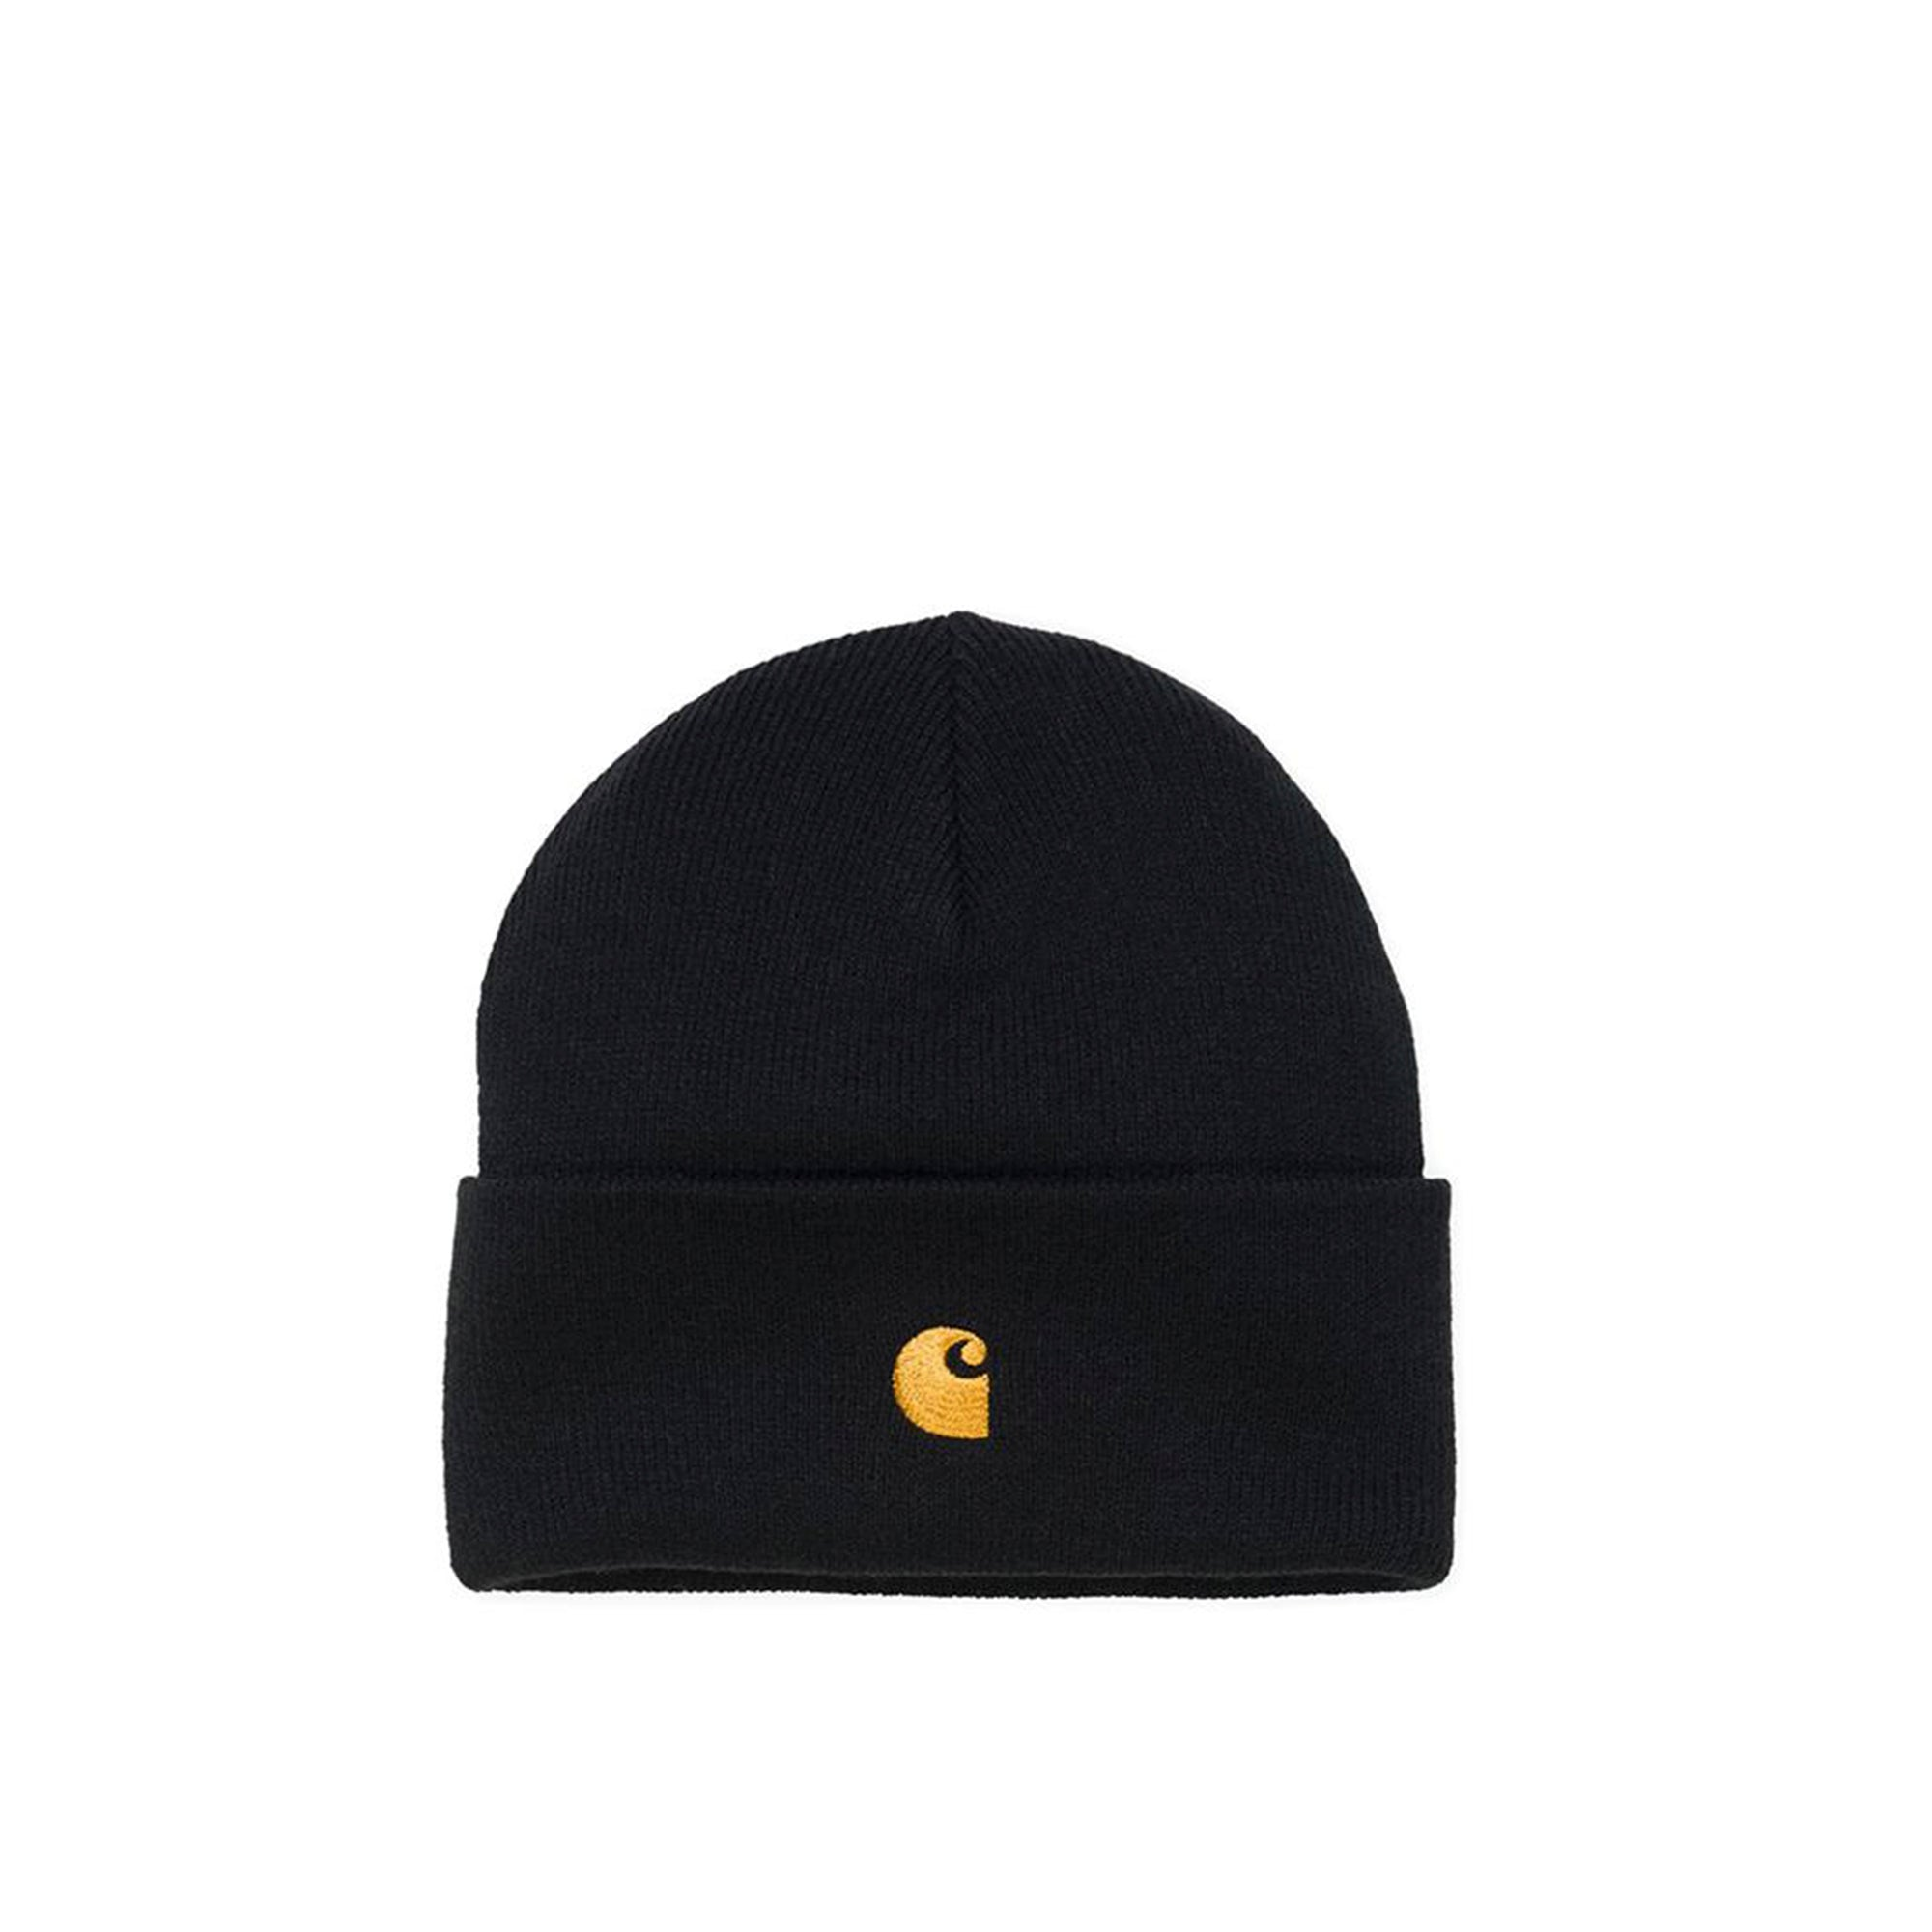 Carhartt WIP Chase Beanie: Black - The Union Project